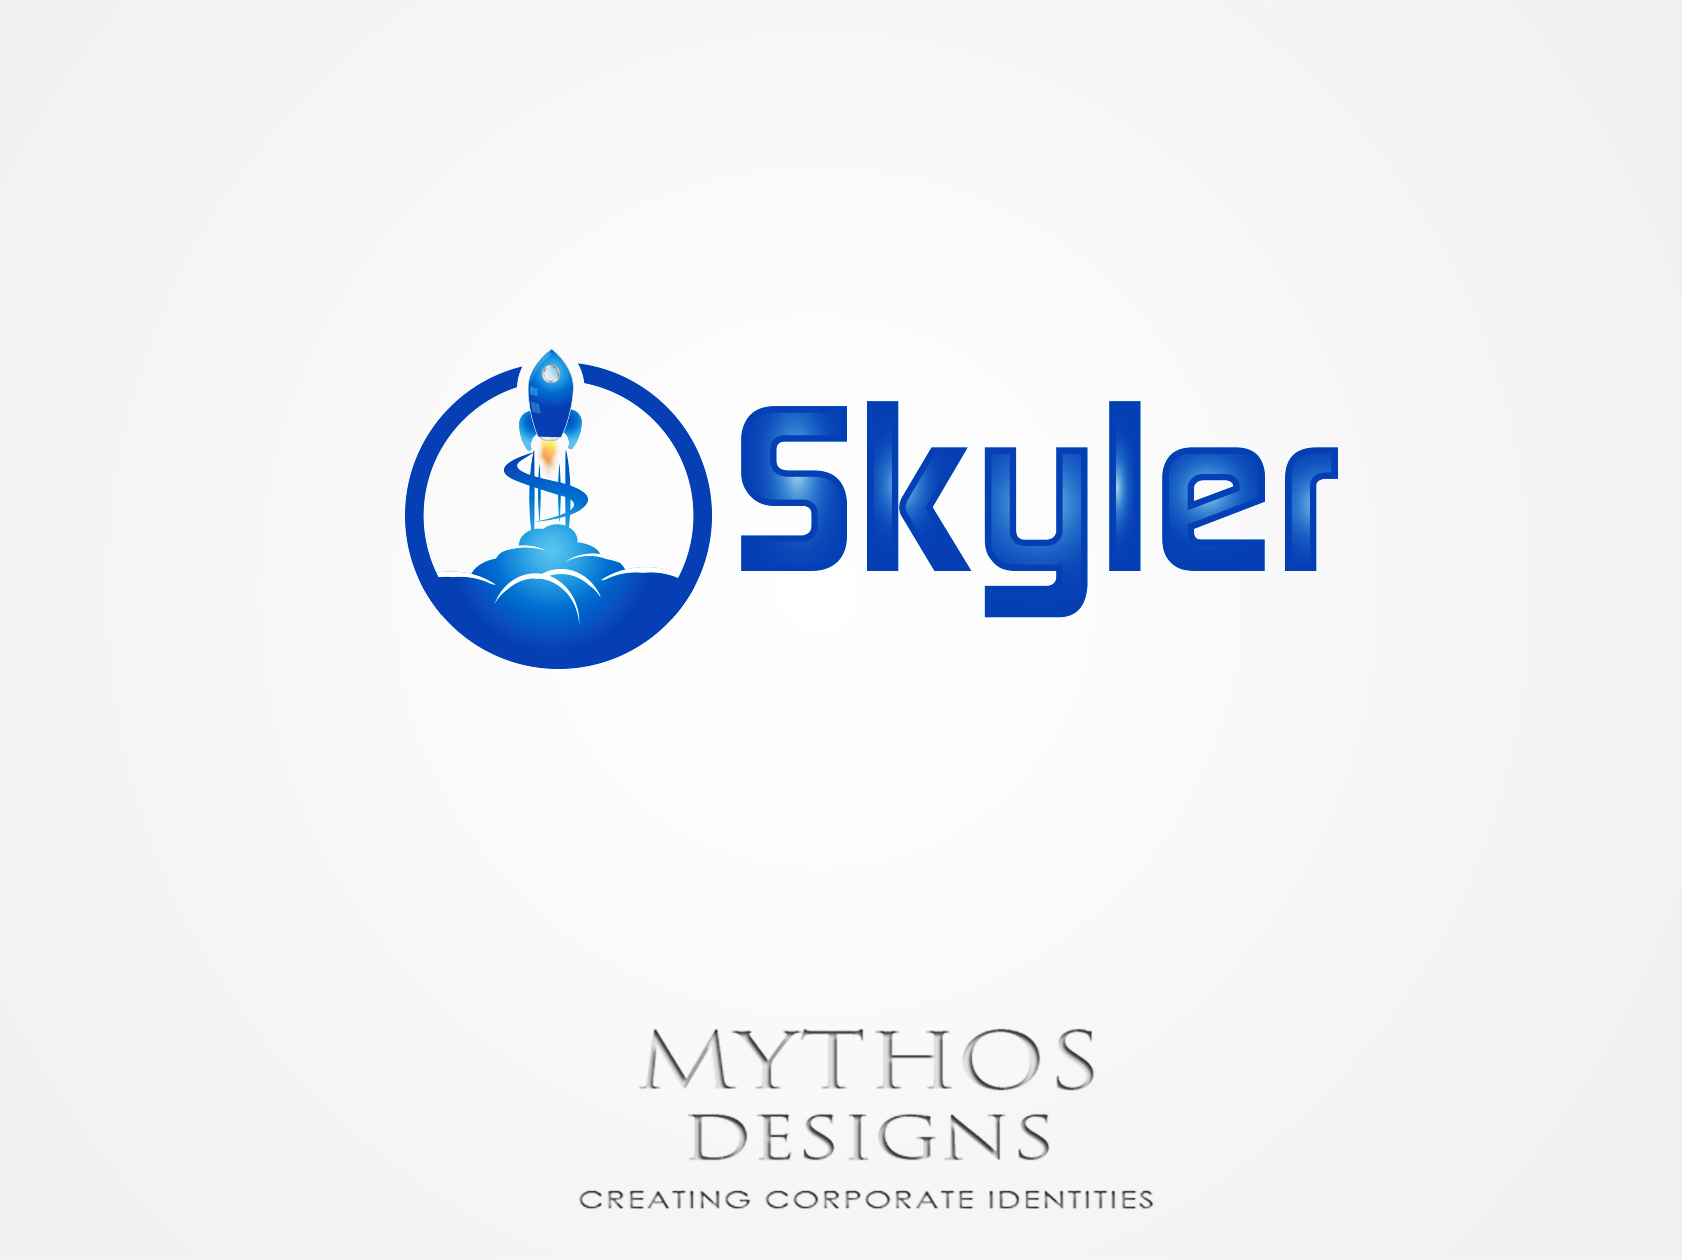 Logo Design by Mythos Designs - Entry No. 24 in the Logo Design Contest Artistic Logo Design for Skyler.Asia.